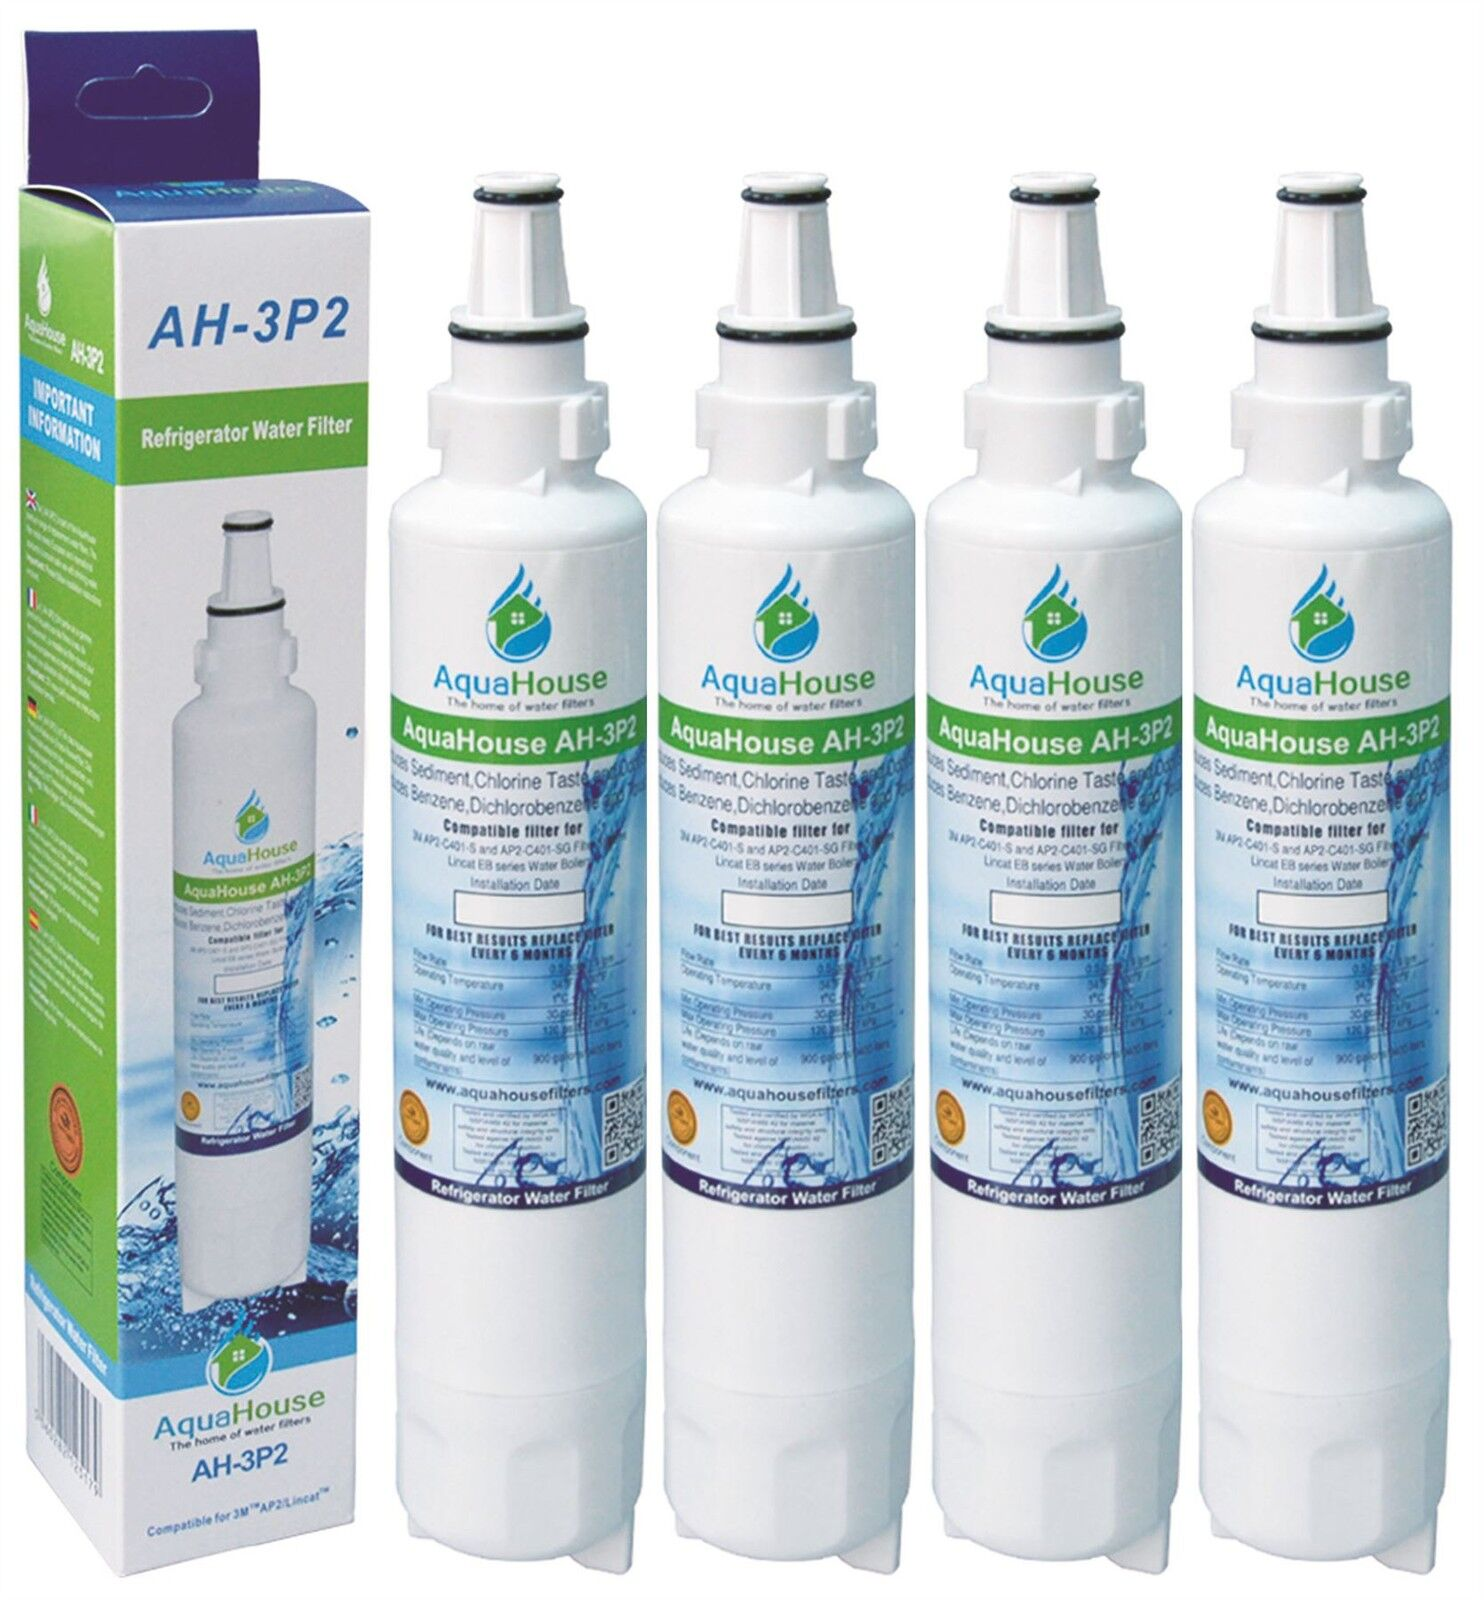 4x Compatible water filter for Burco Water Water Water Boiler ARK109 fits 3M AP2-C401-SG 17a591